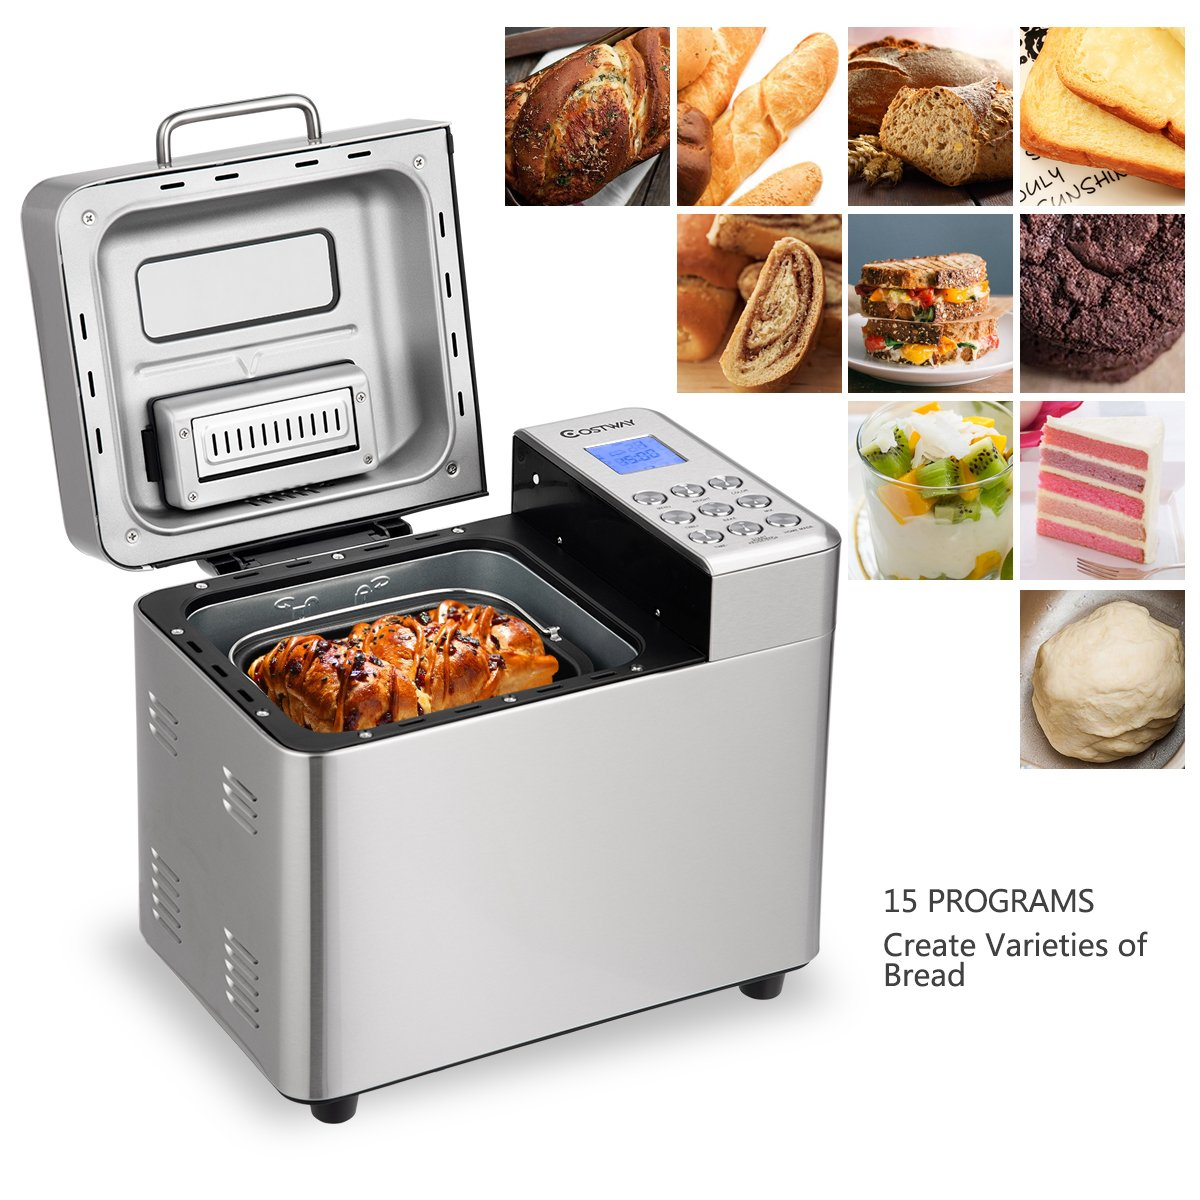 Automatic Bread Maker with 15 Programs,Safeplus 2LB Programmable Bread Machine with 15 Hours Delay Timer, 1 Hour Keep Warm by safeplus (Image #3)